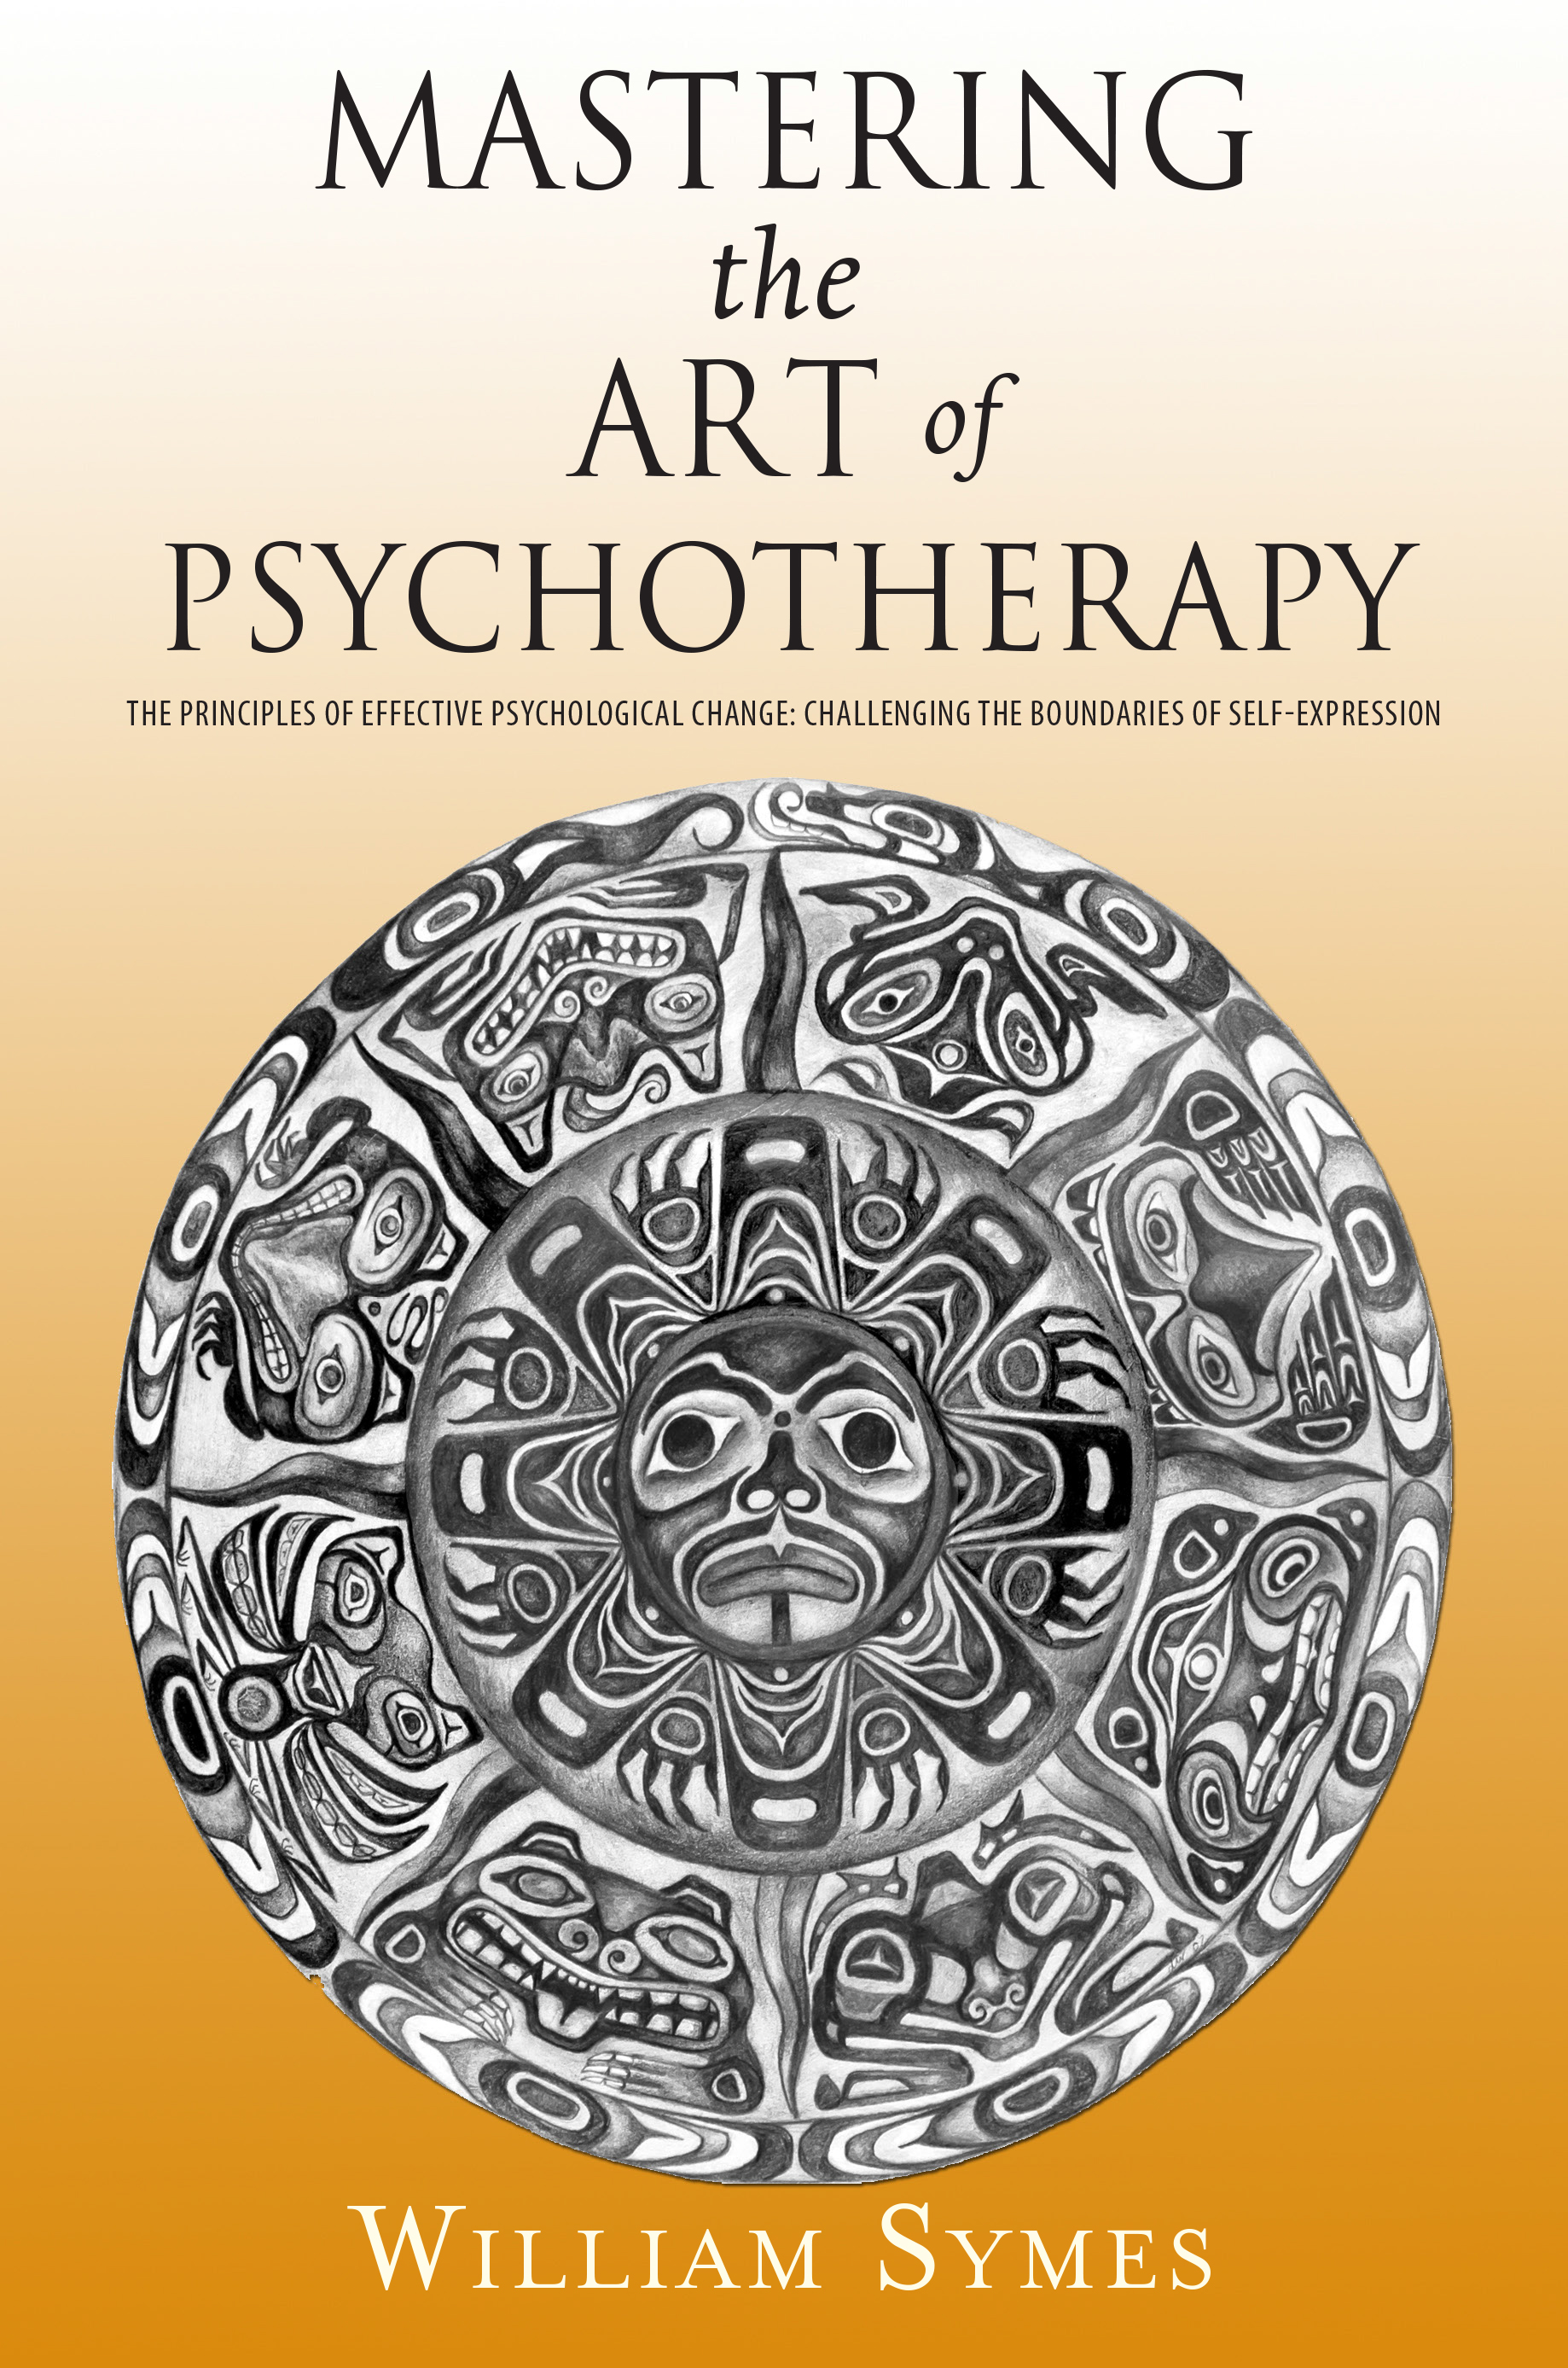 Mastering the Art of Psychotherapy